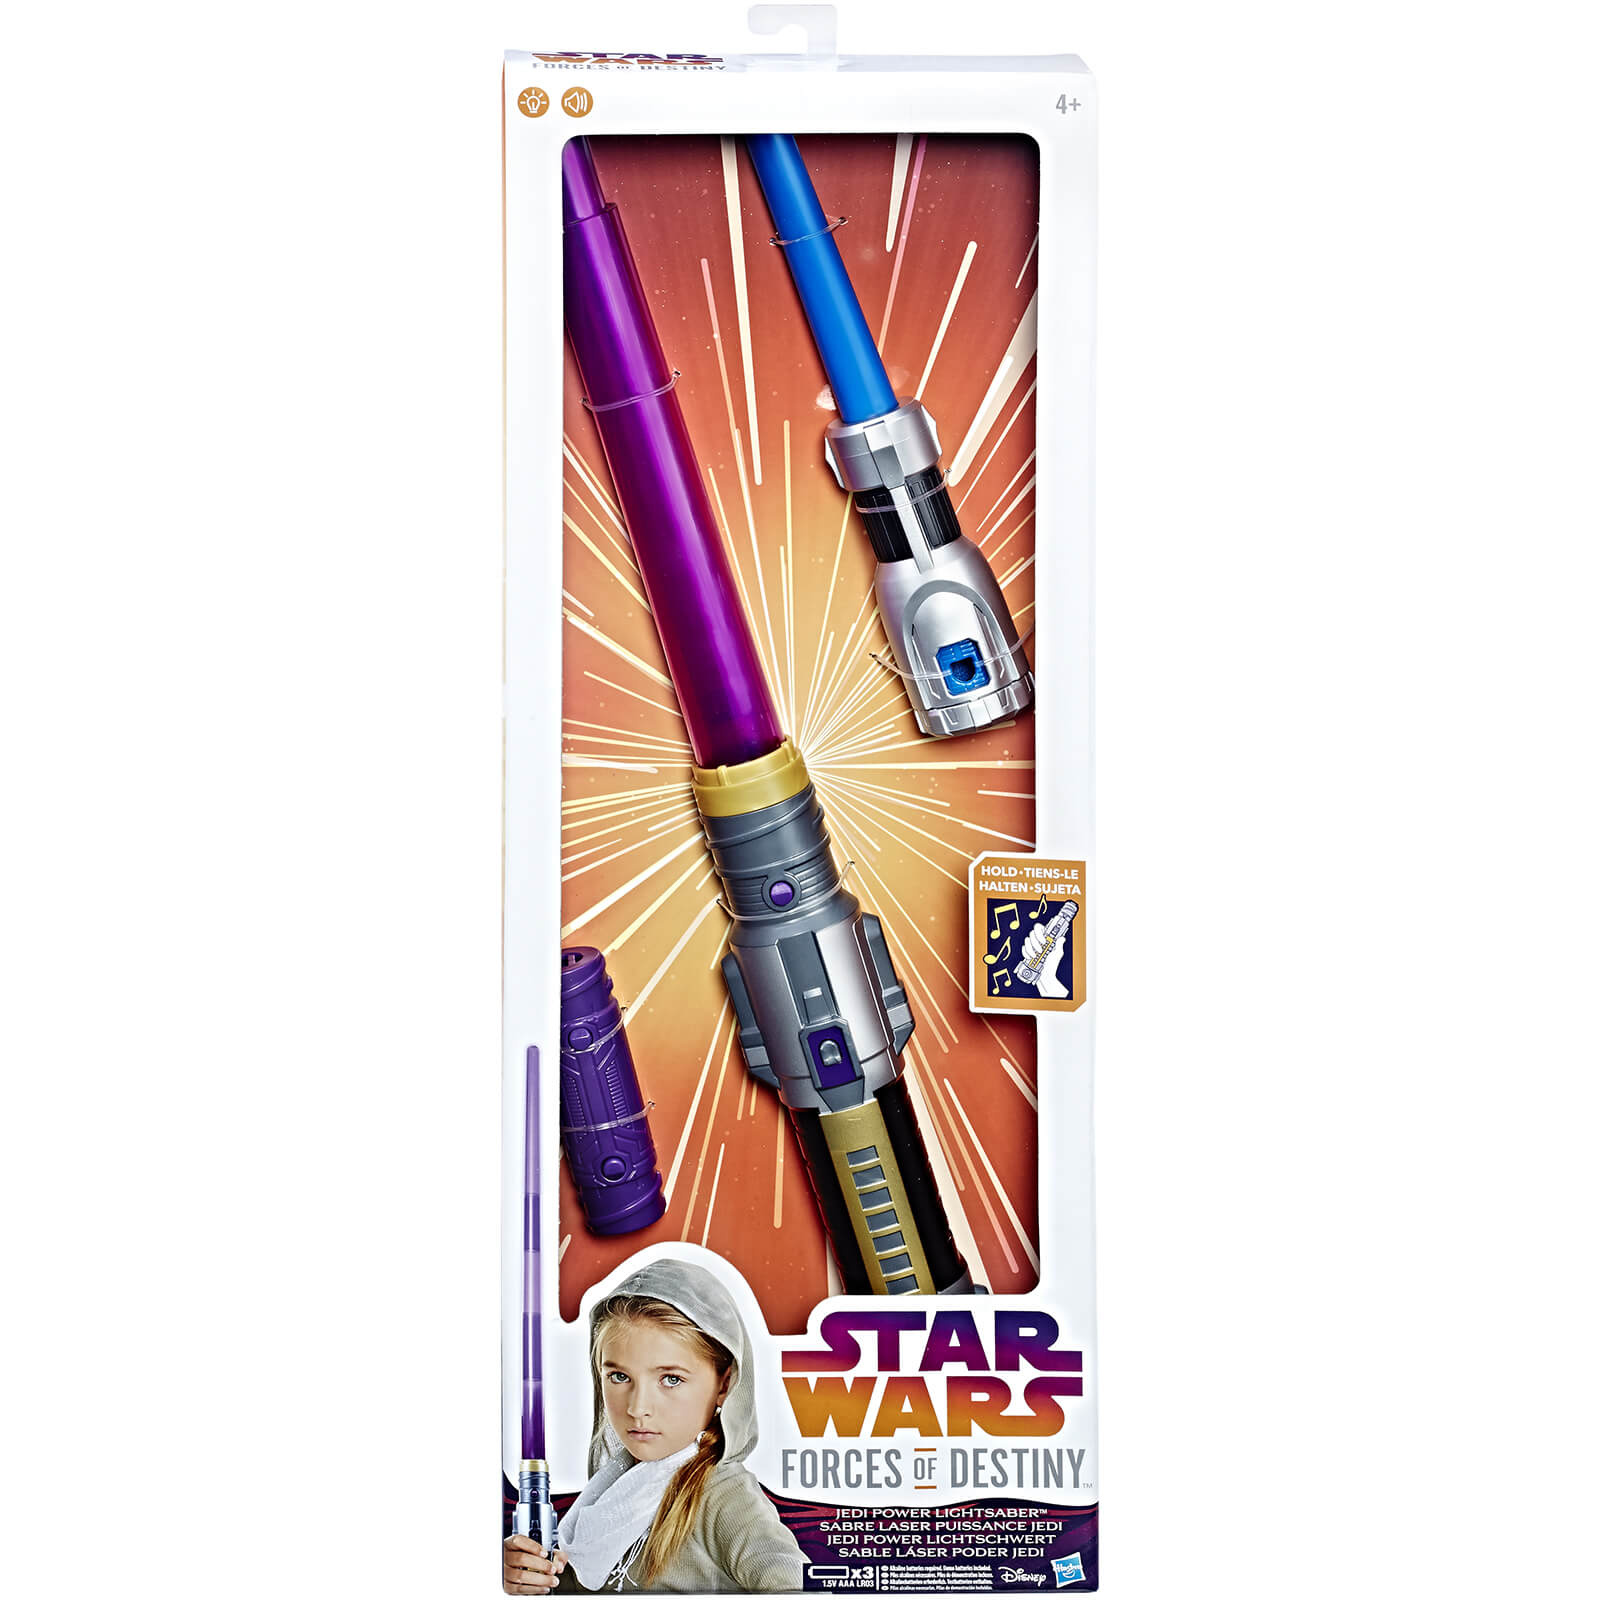 Star Wars Forces of Destiny Feature Lightsaber